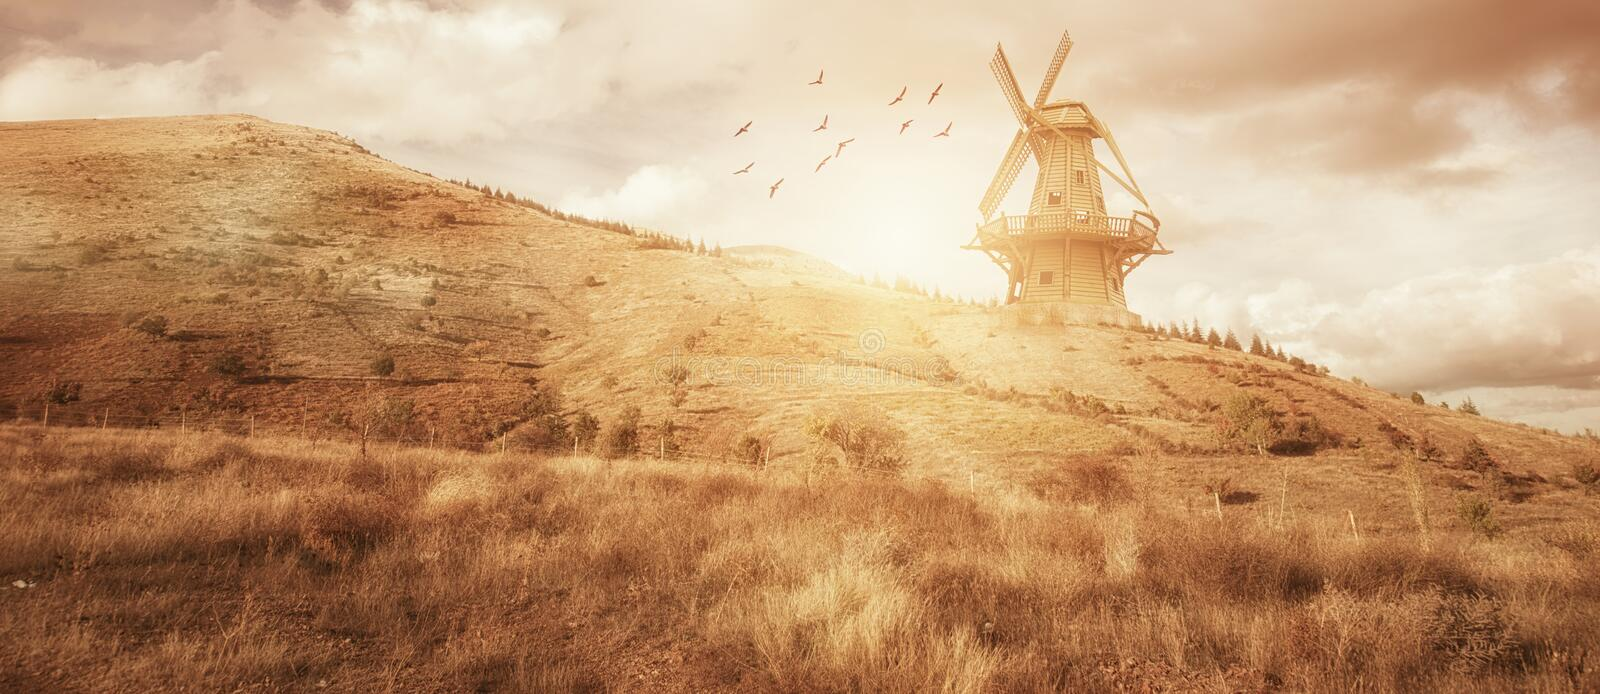 Beautiful panaroma windmill farm landscape. Agriculture concept stock image